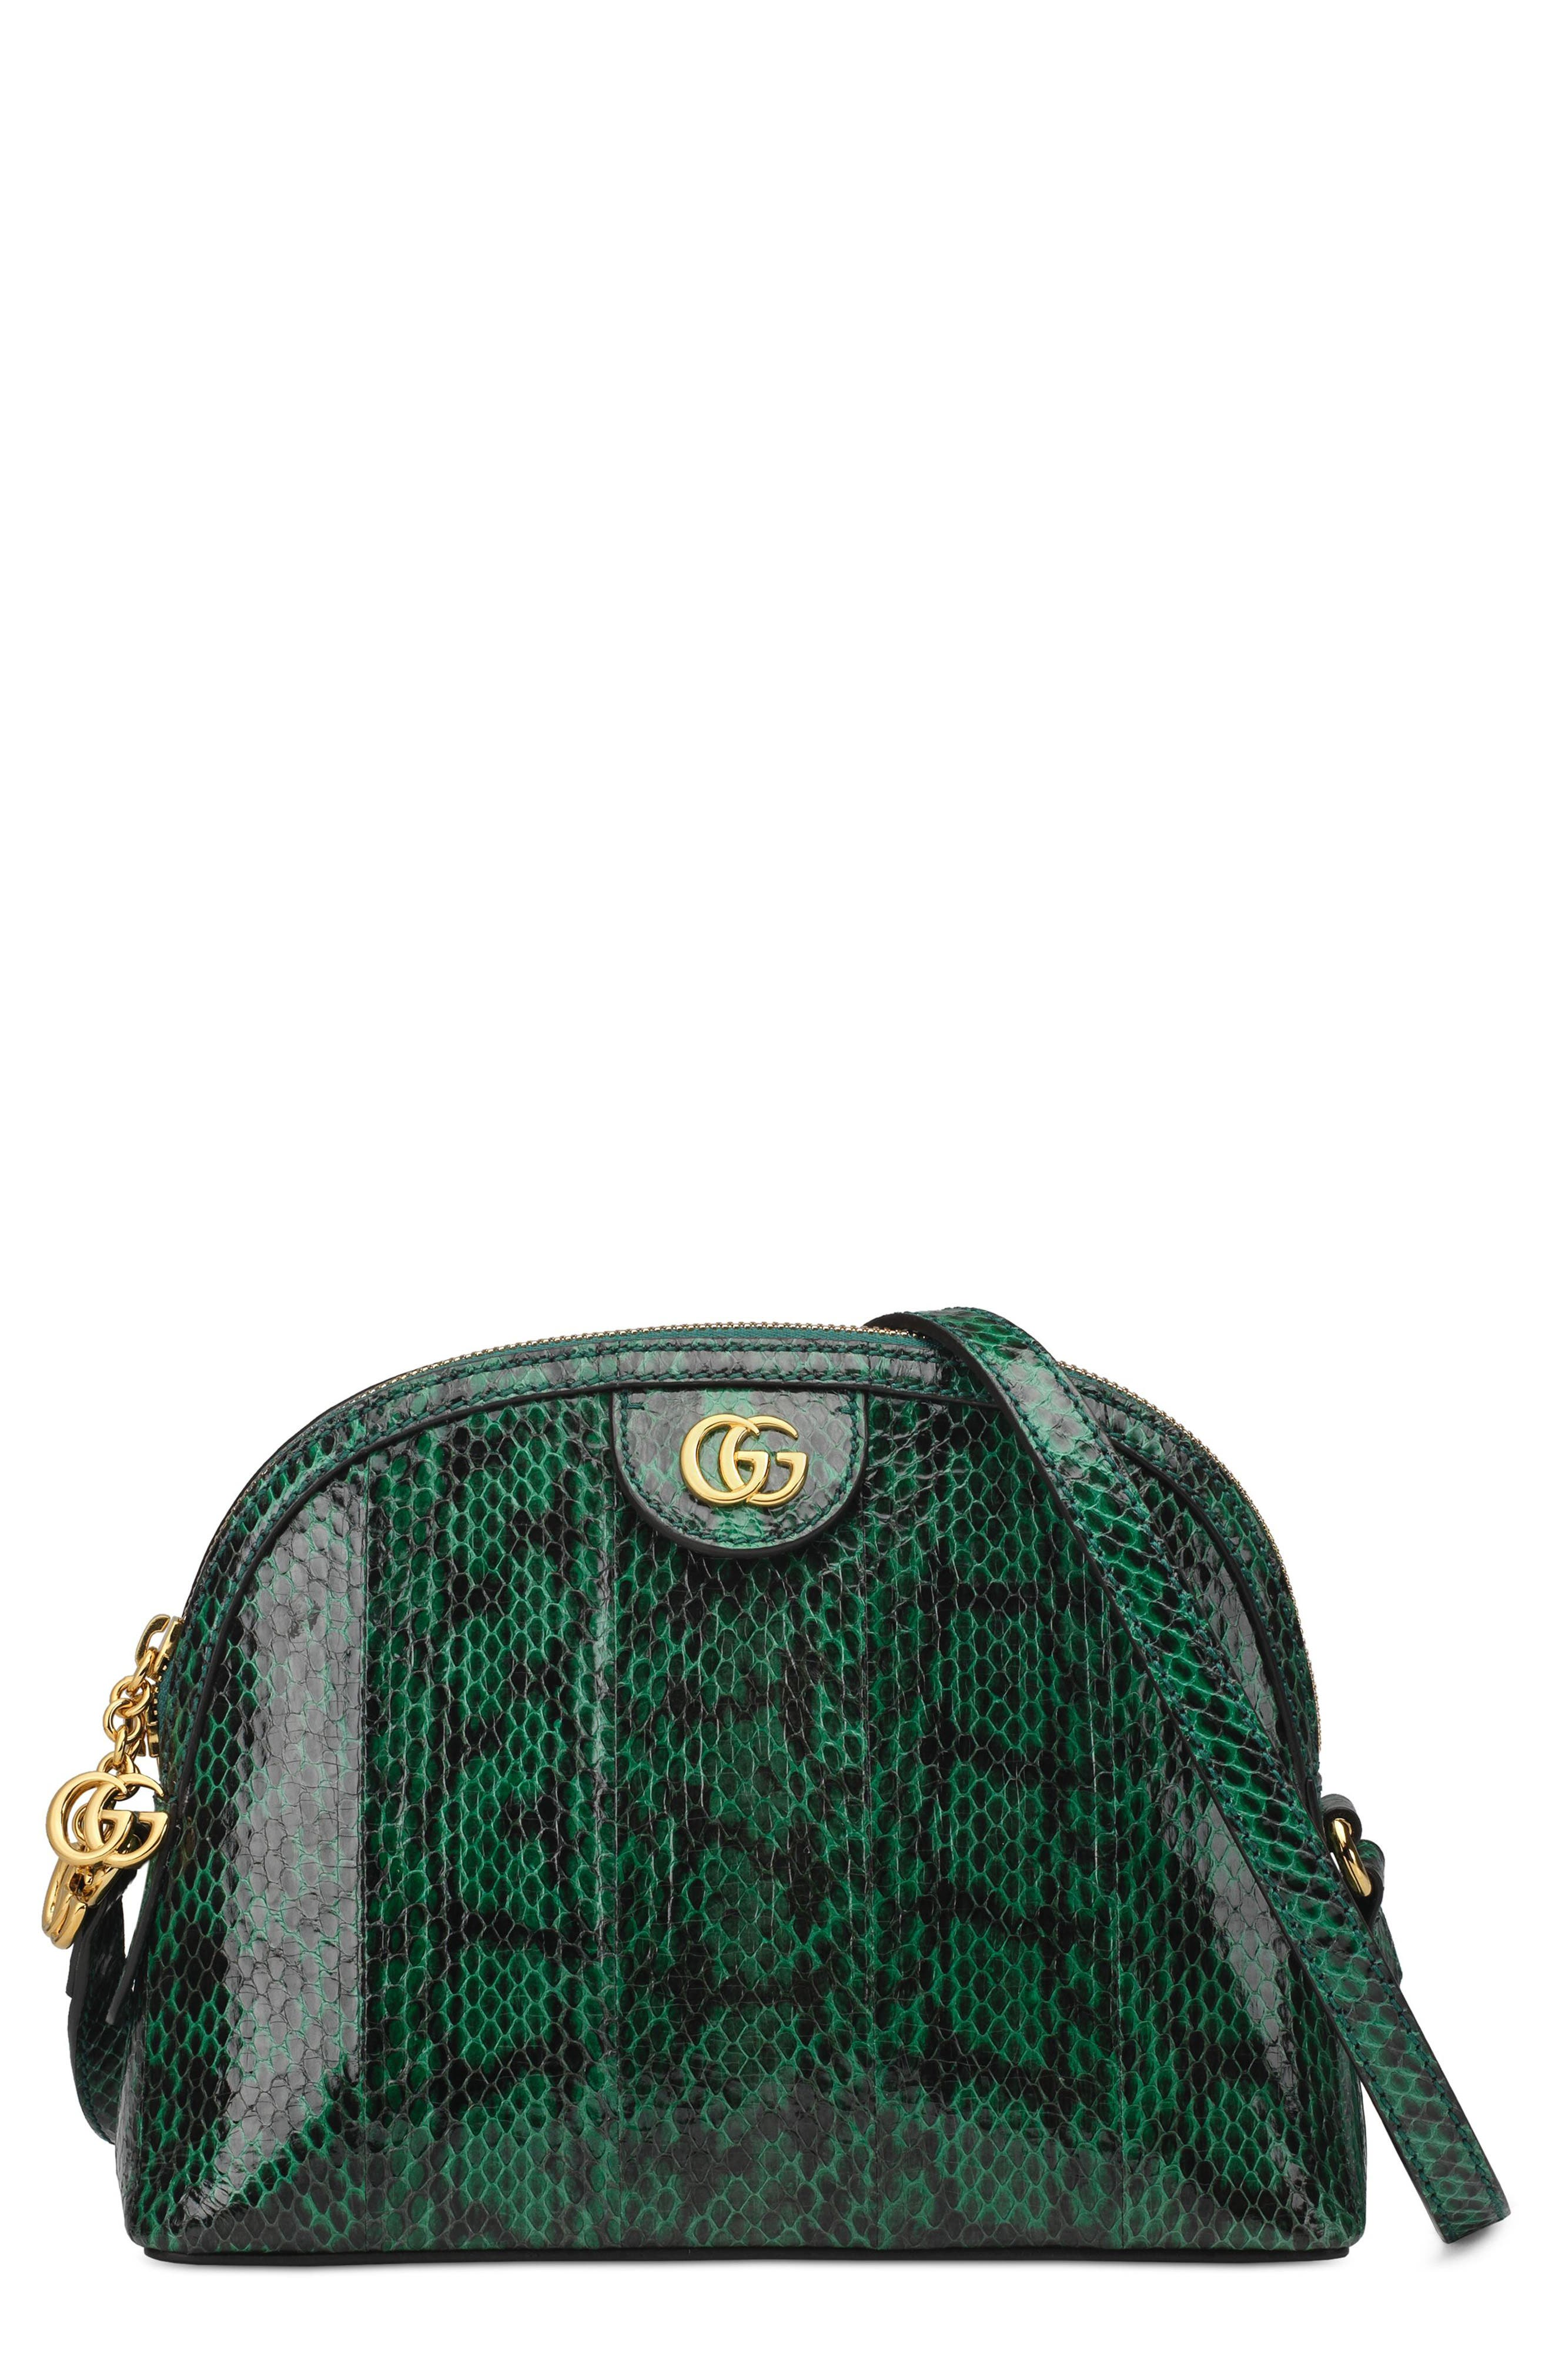 Small Ophidia Genuine Snakeskin Dome Satchel,                         Main,                         color, EMERALD